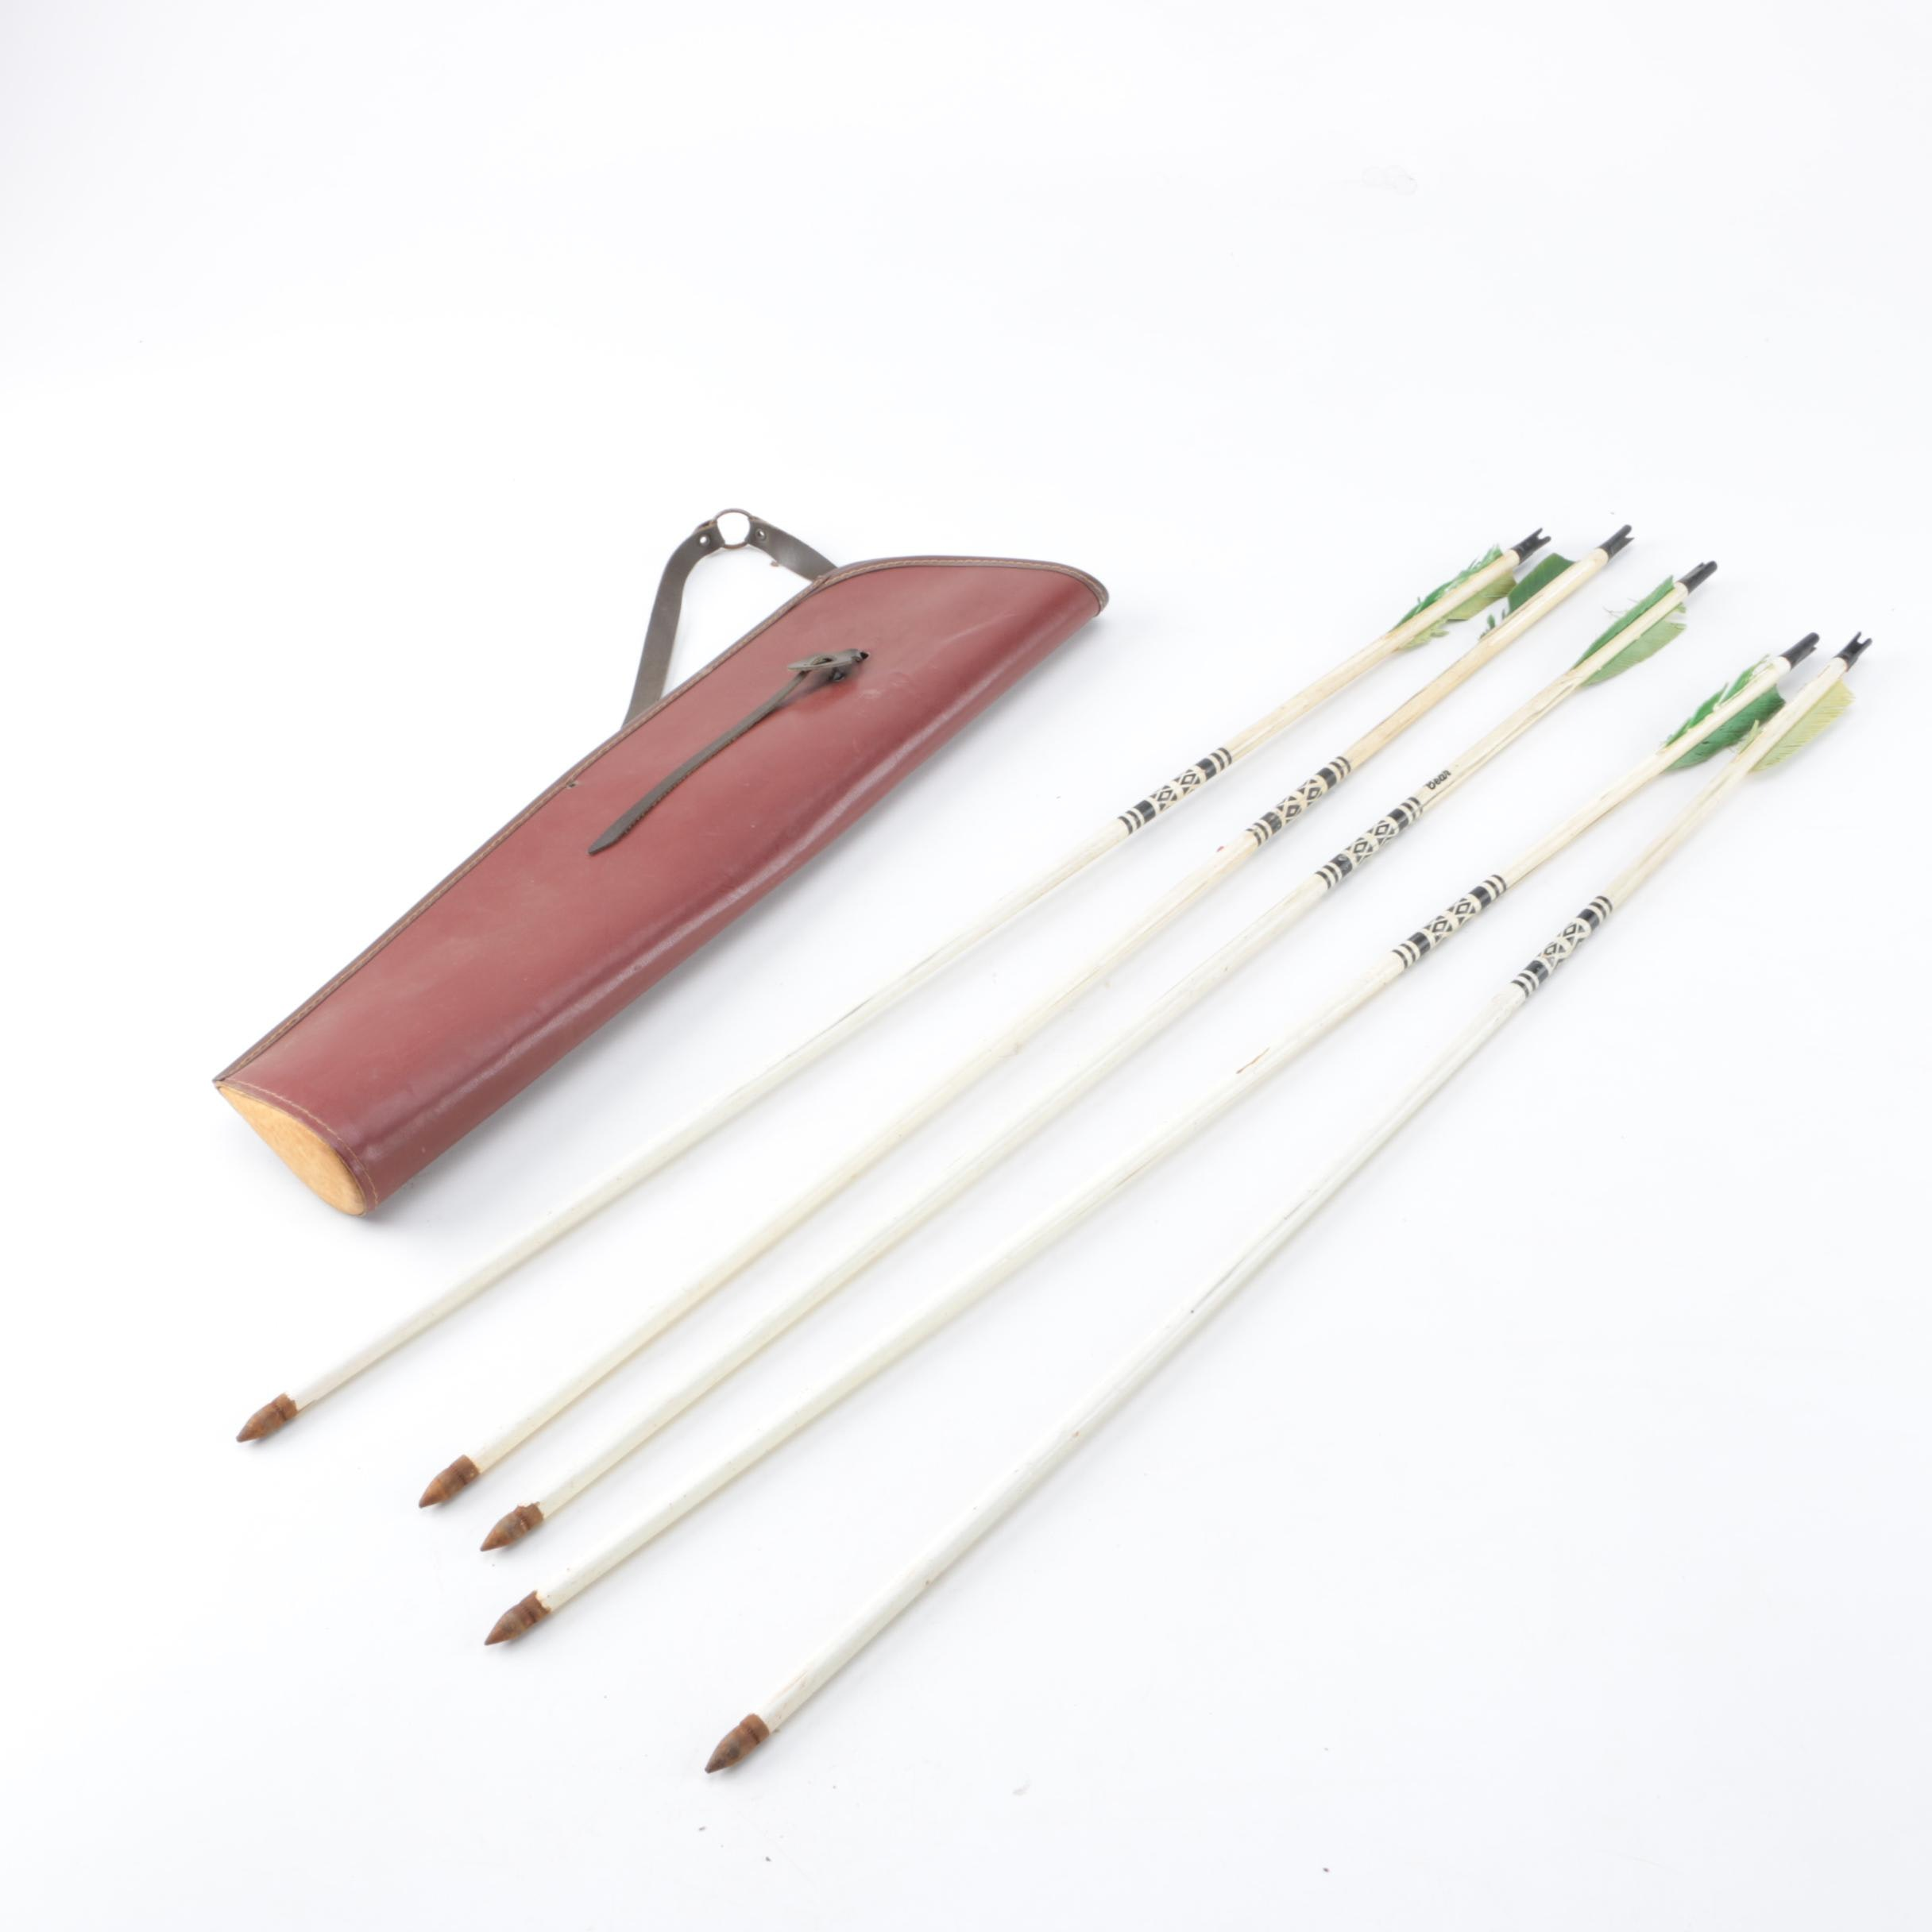 Bear Wooden Archery Arrows with Quiver